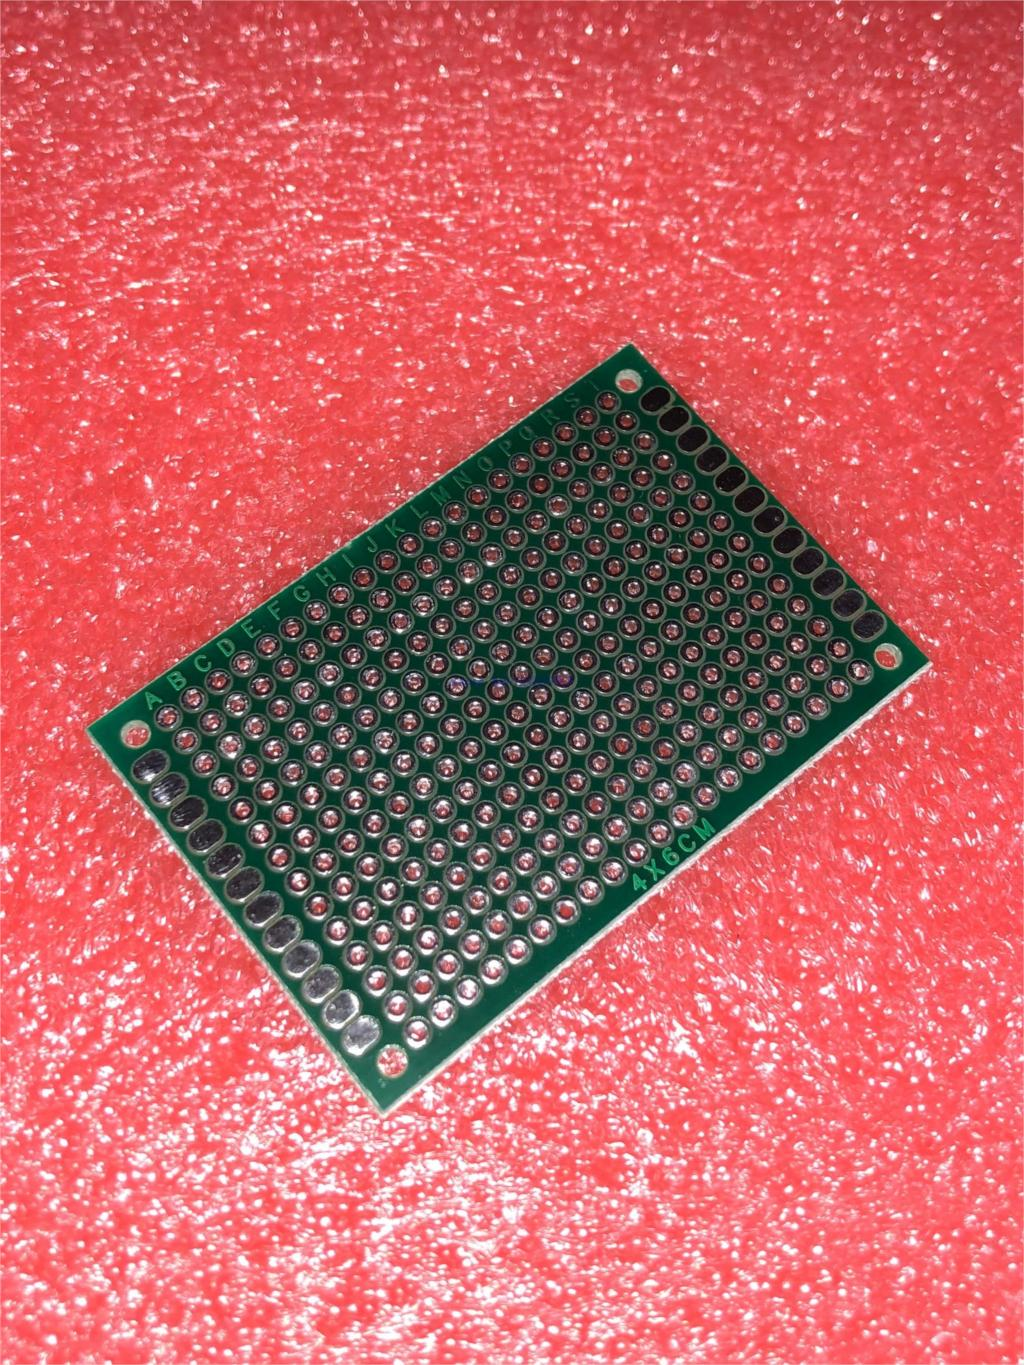 5pcs/lot 4x6cm 4*6 Double Side Prototype PCB Diy Universal Printed Circuit Board In Stock